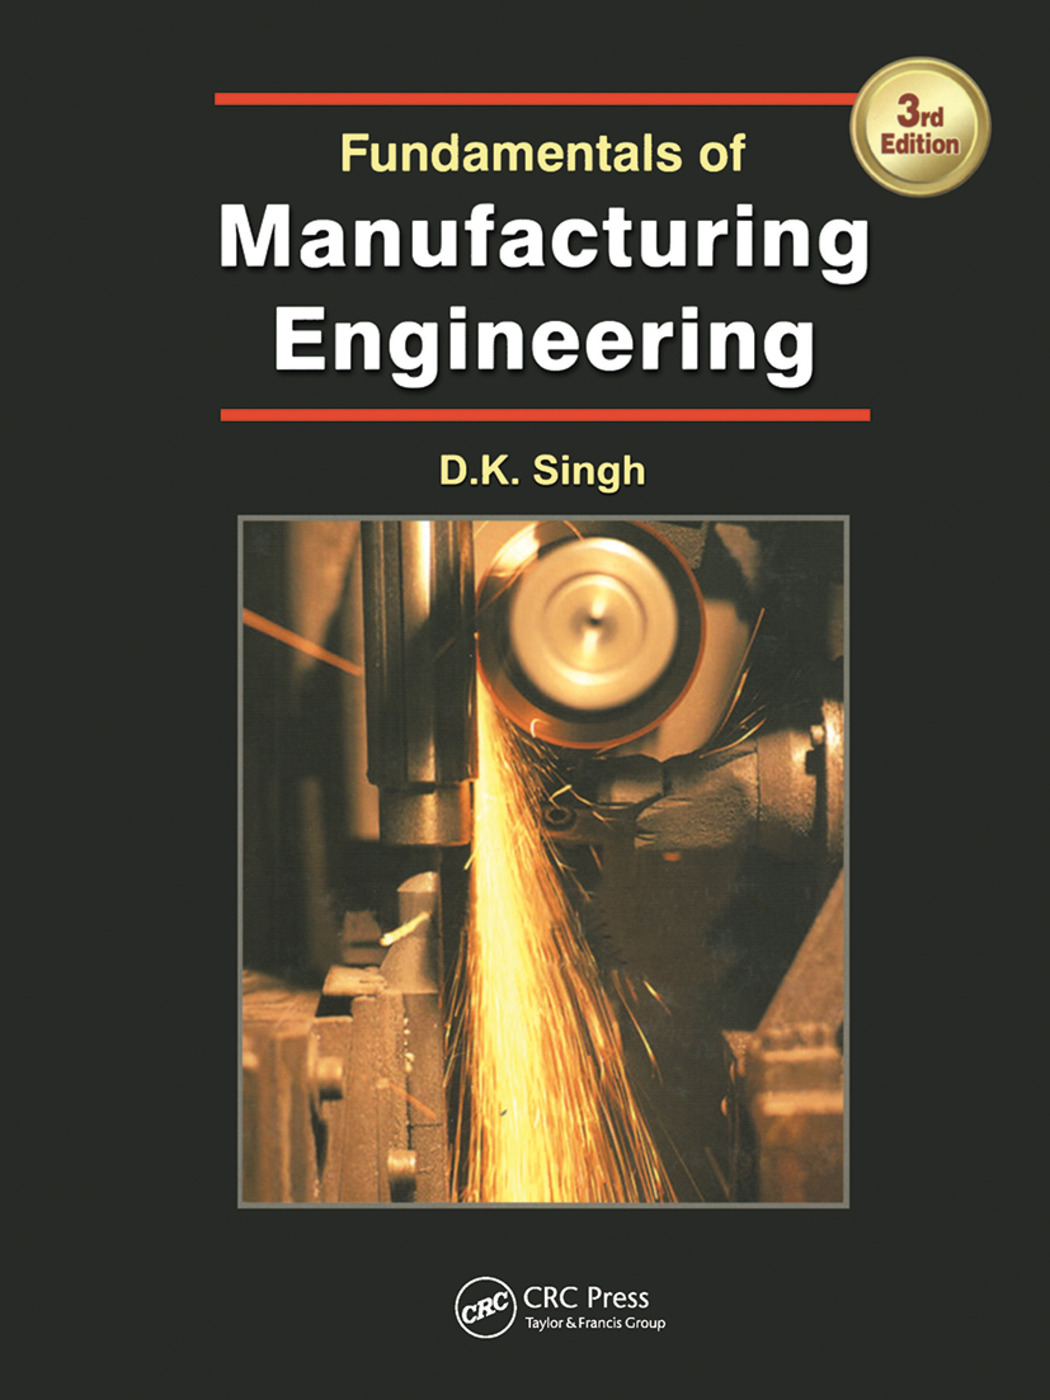 Fundamentals of Manufacturing Engineering, Third Edition: 3rd Edition (Paperback) book cover